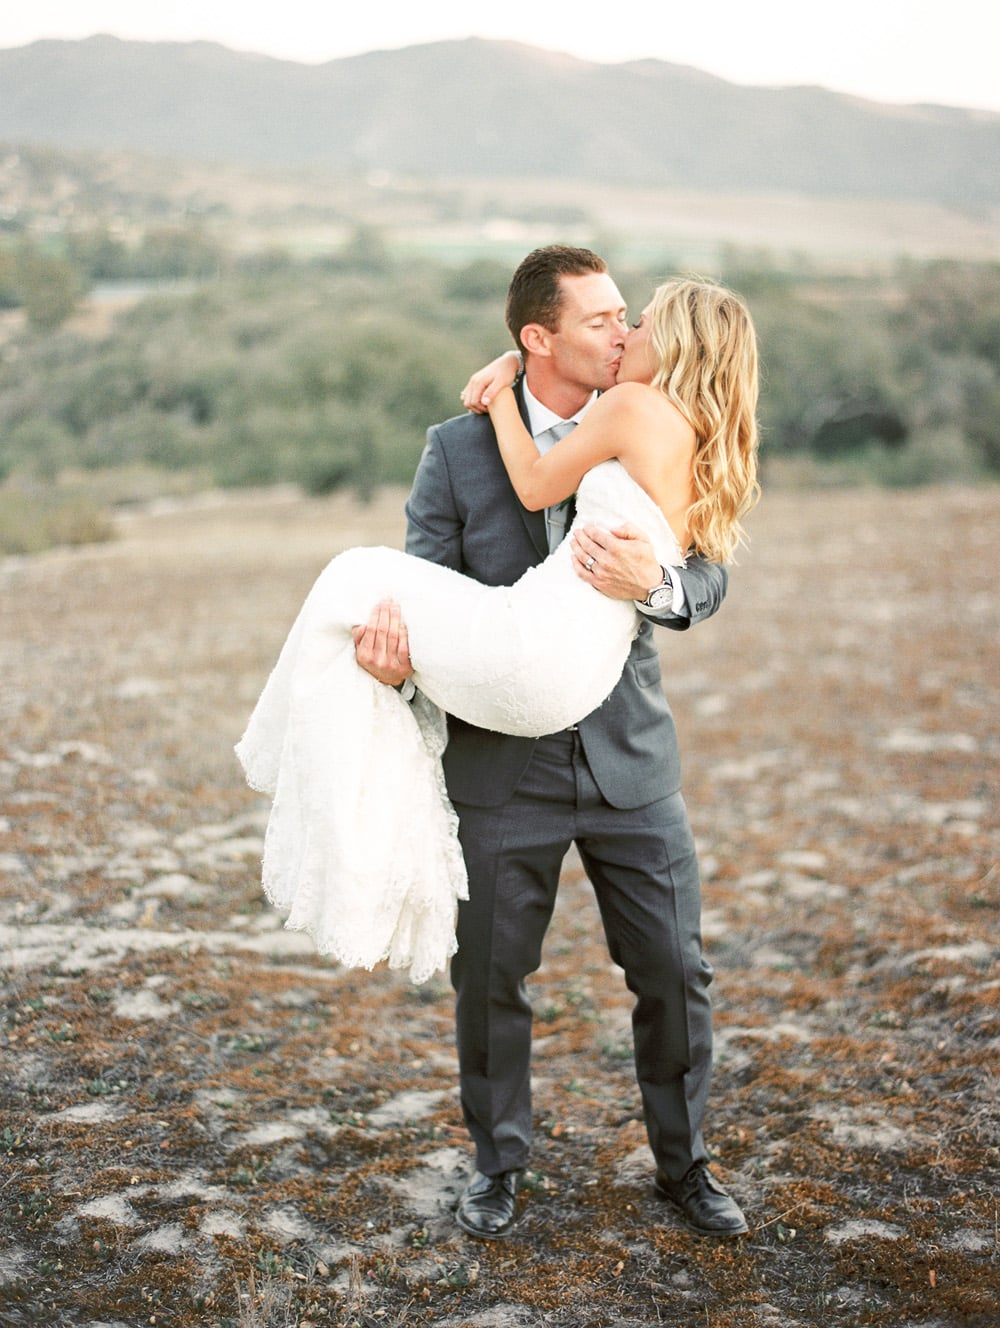 Destination film wedding photographer Jen Rodriguez